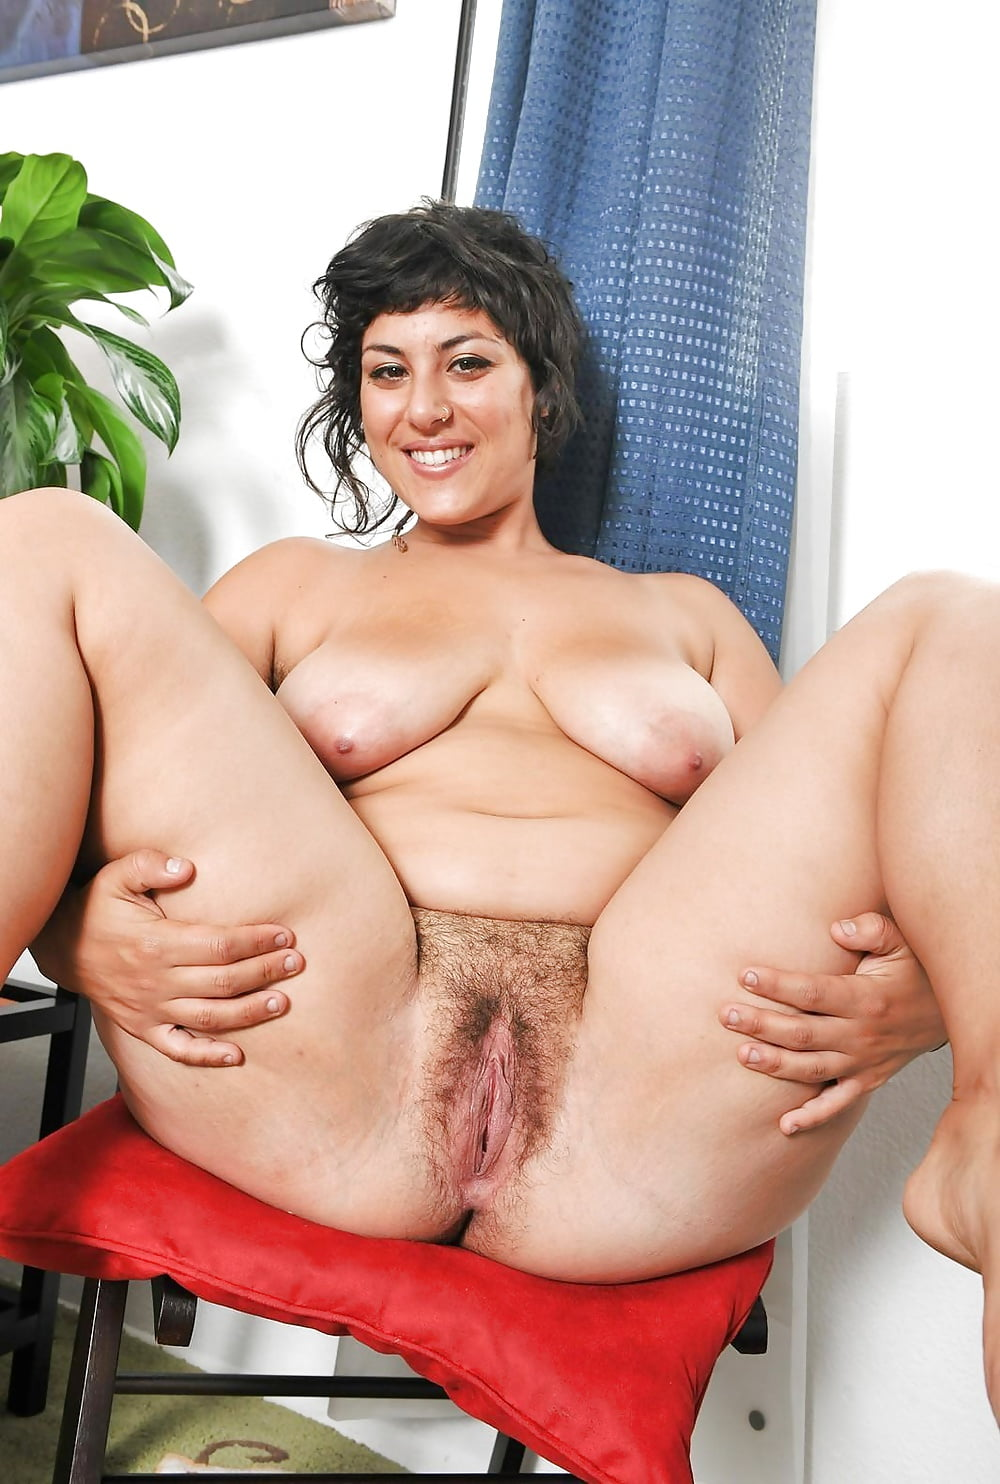 Fat Hairy Chick Pics